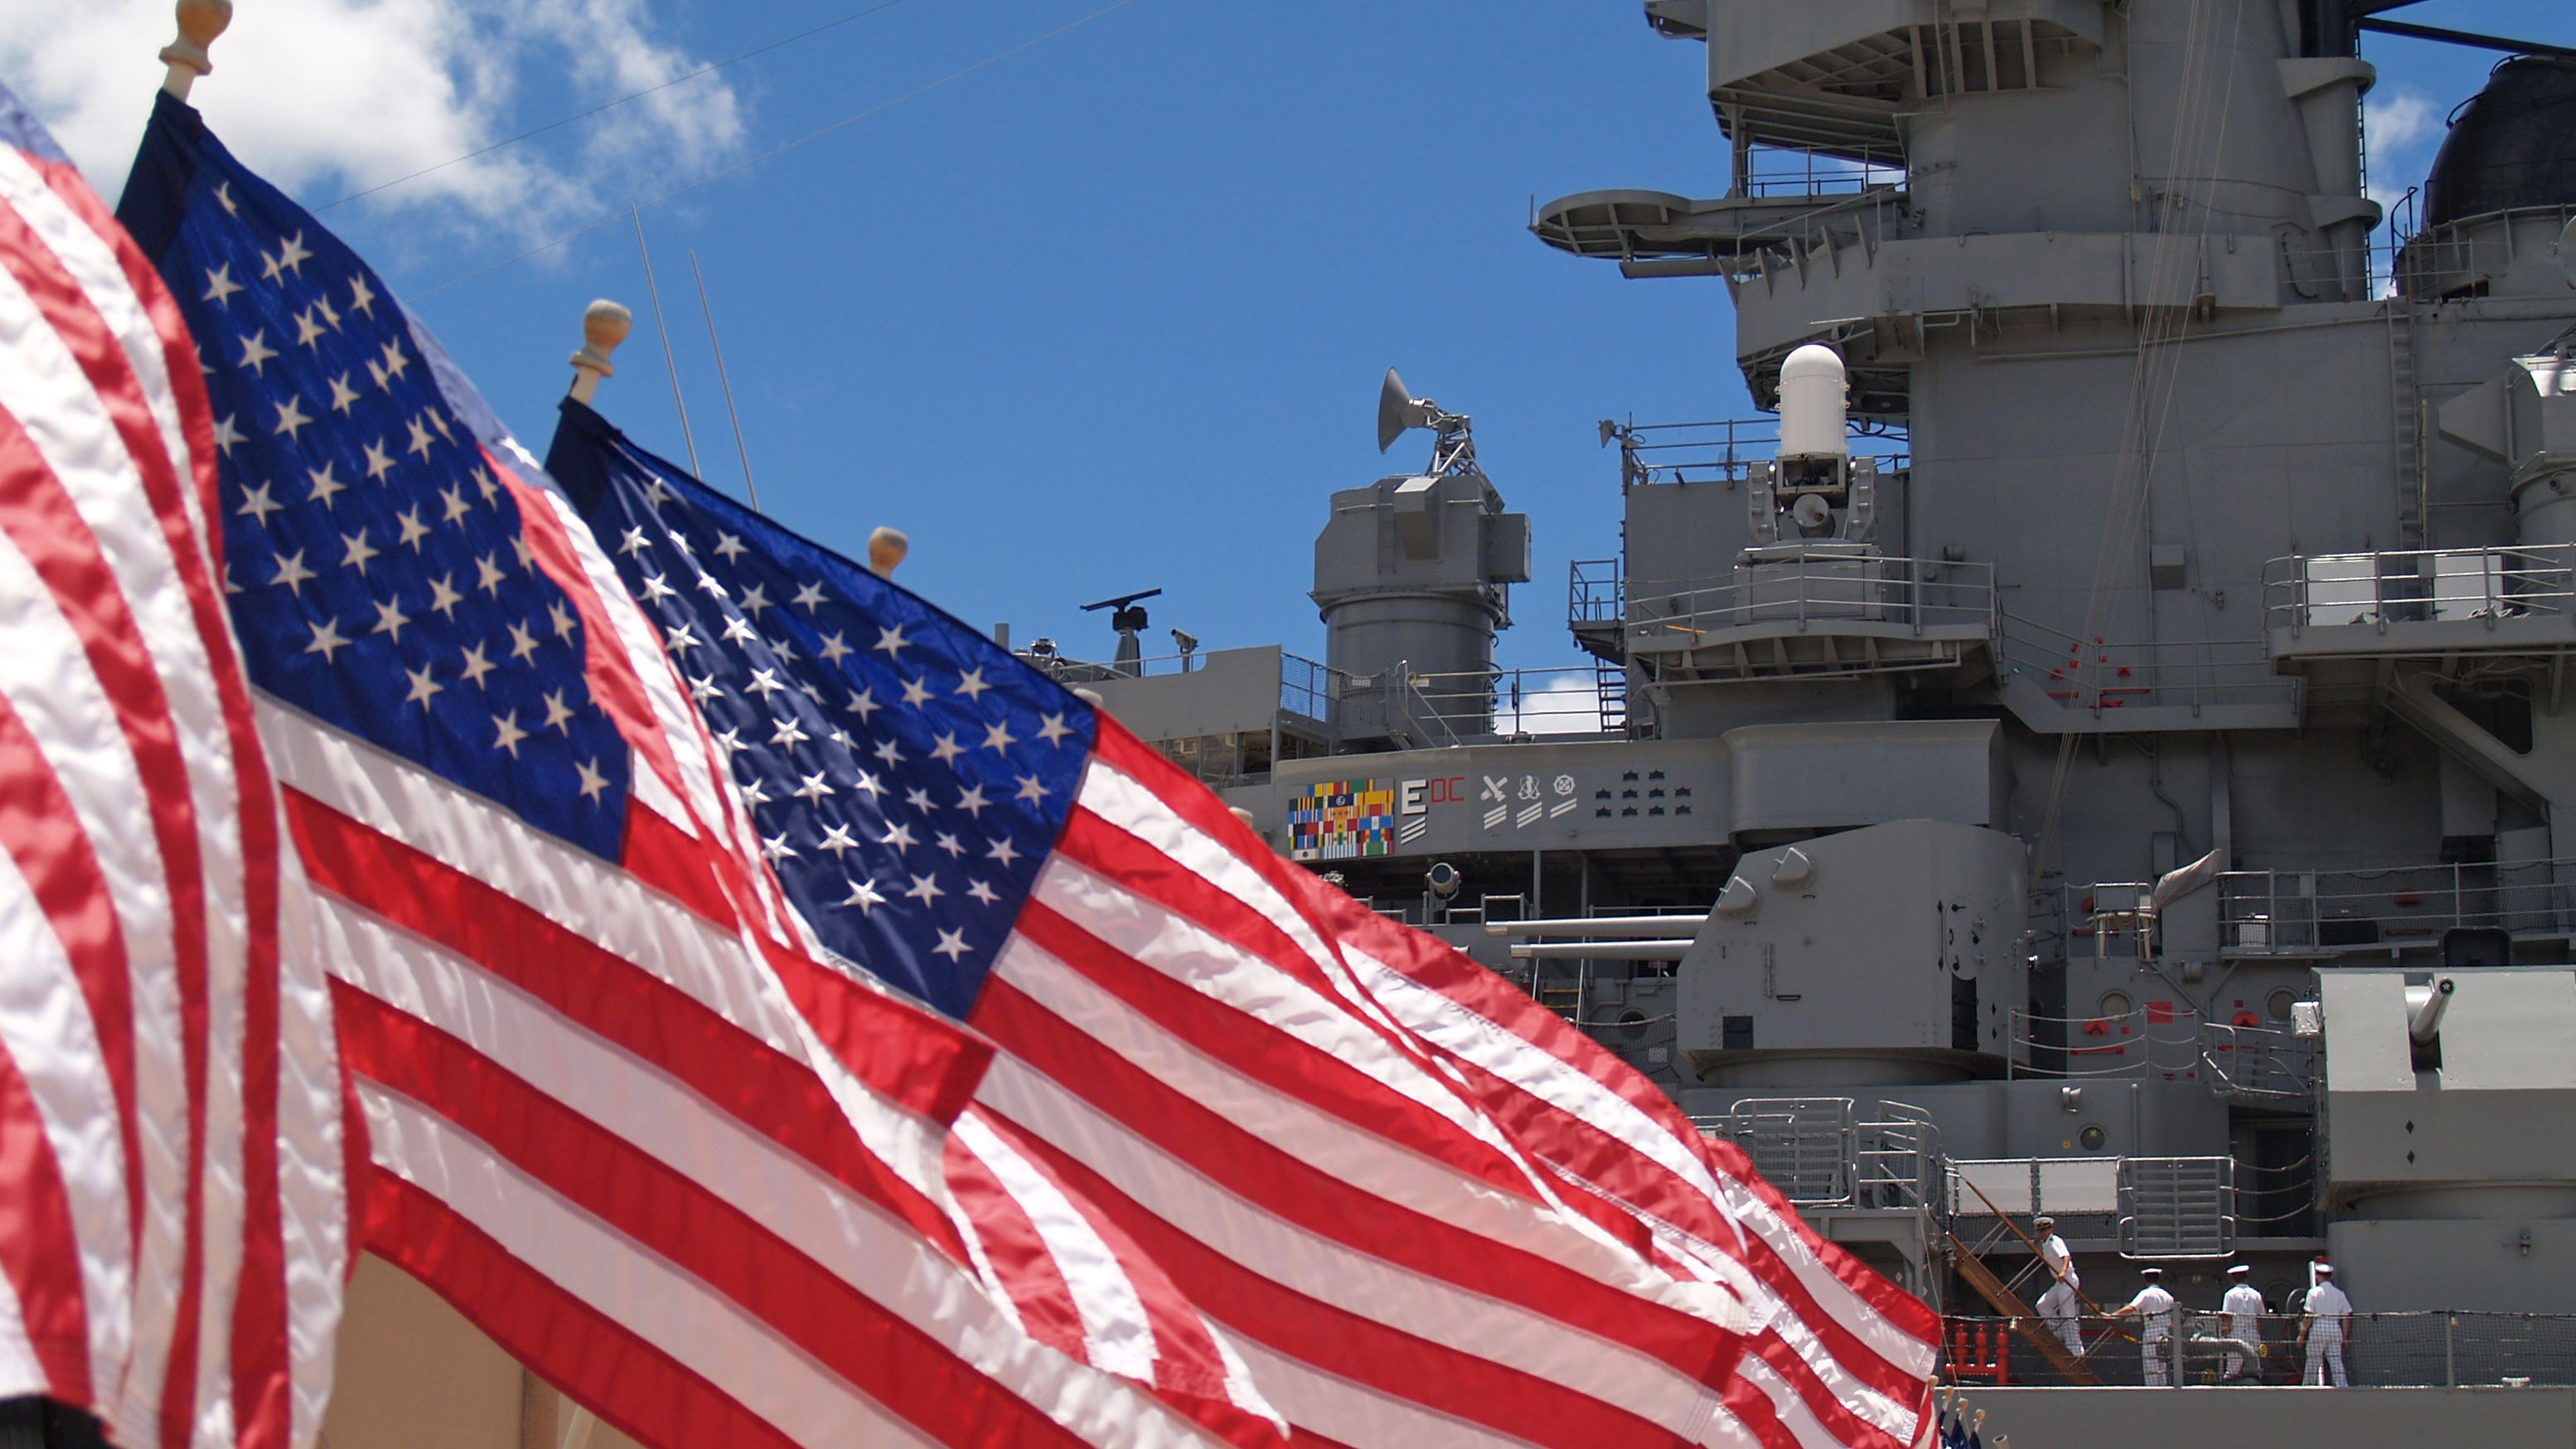 Understand Deployments Before You Join the Navy